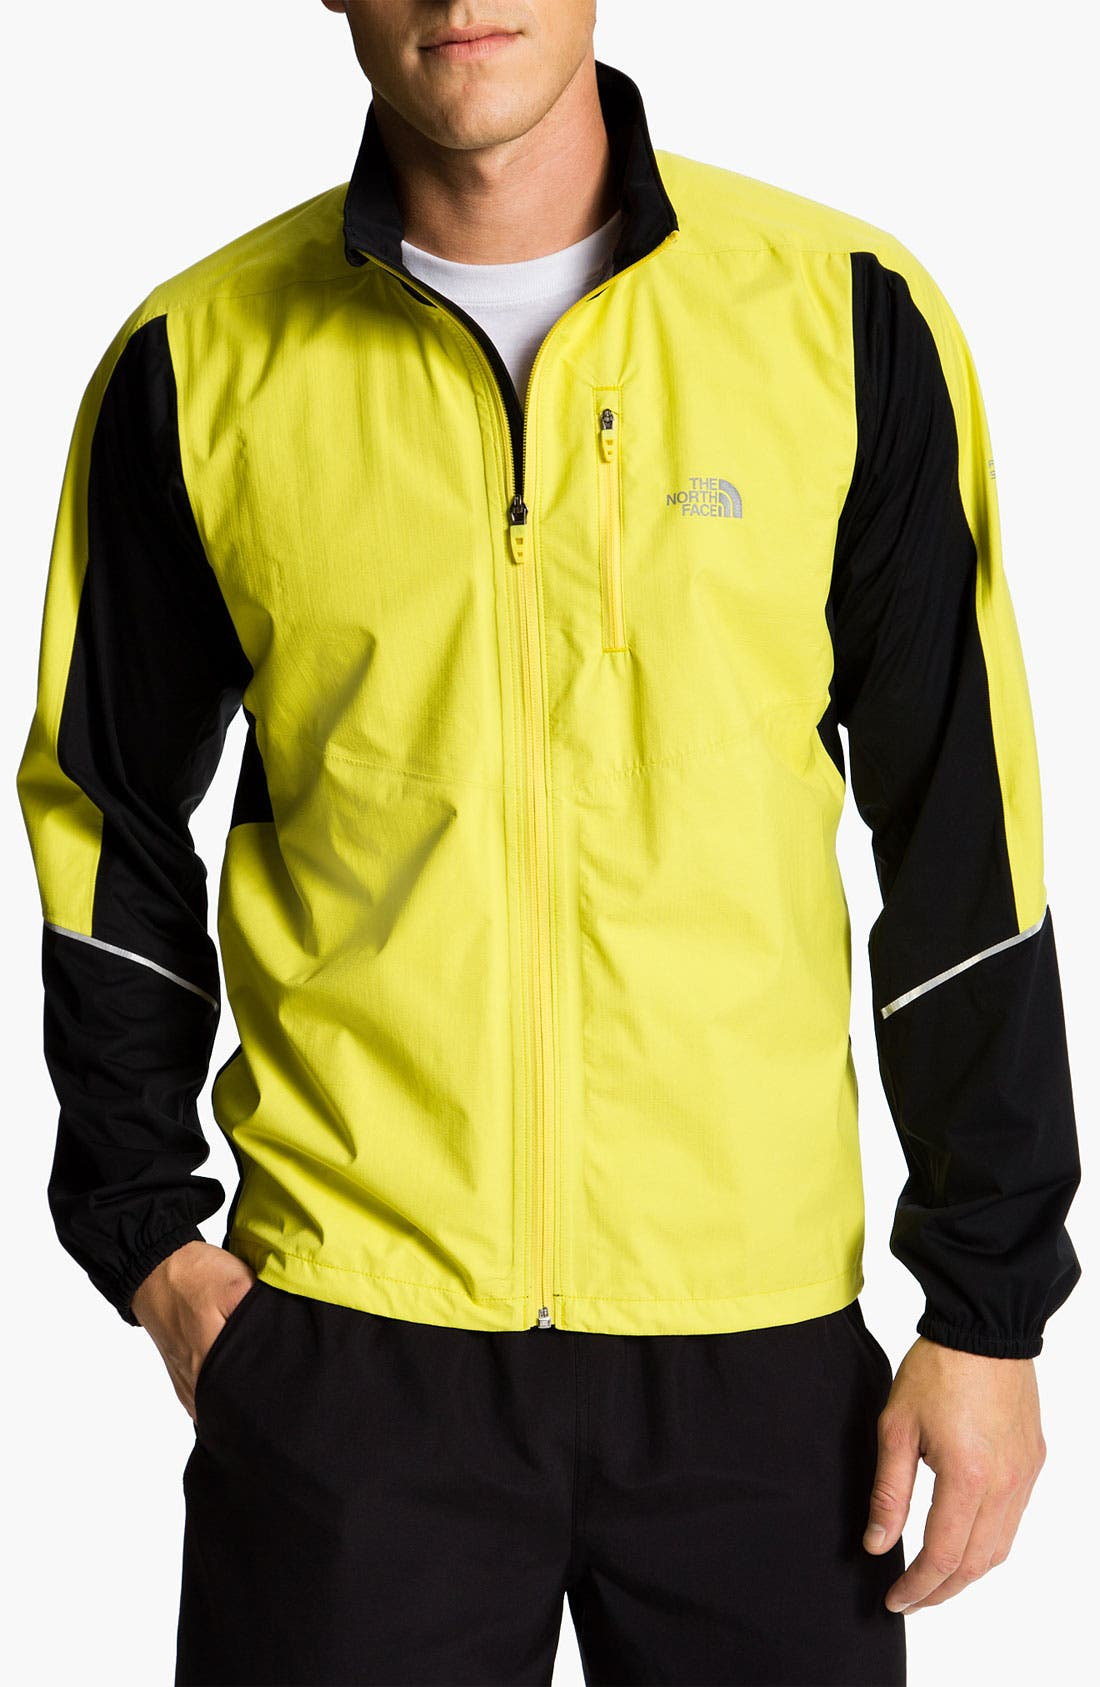 Main Image - The North Face 'Stormy Trail' Jacket (Online Exclusive)